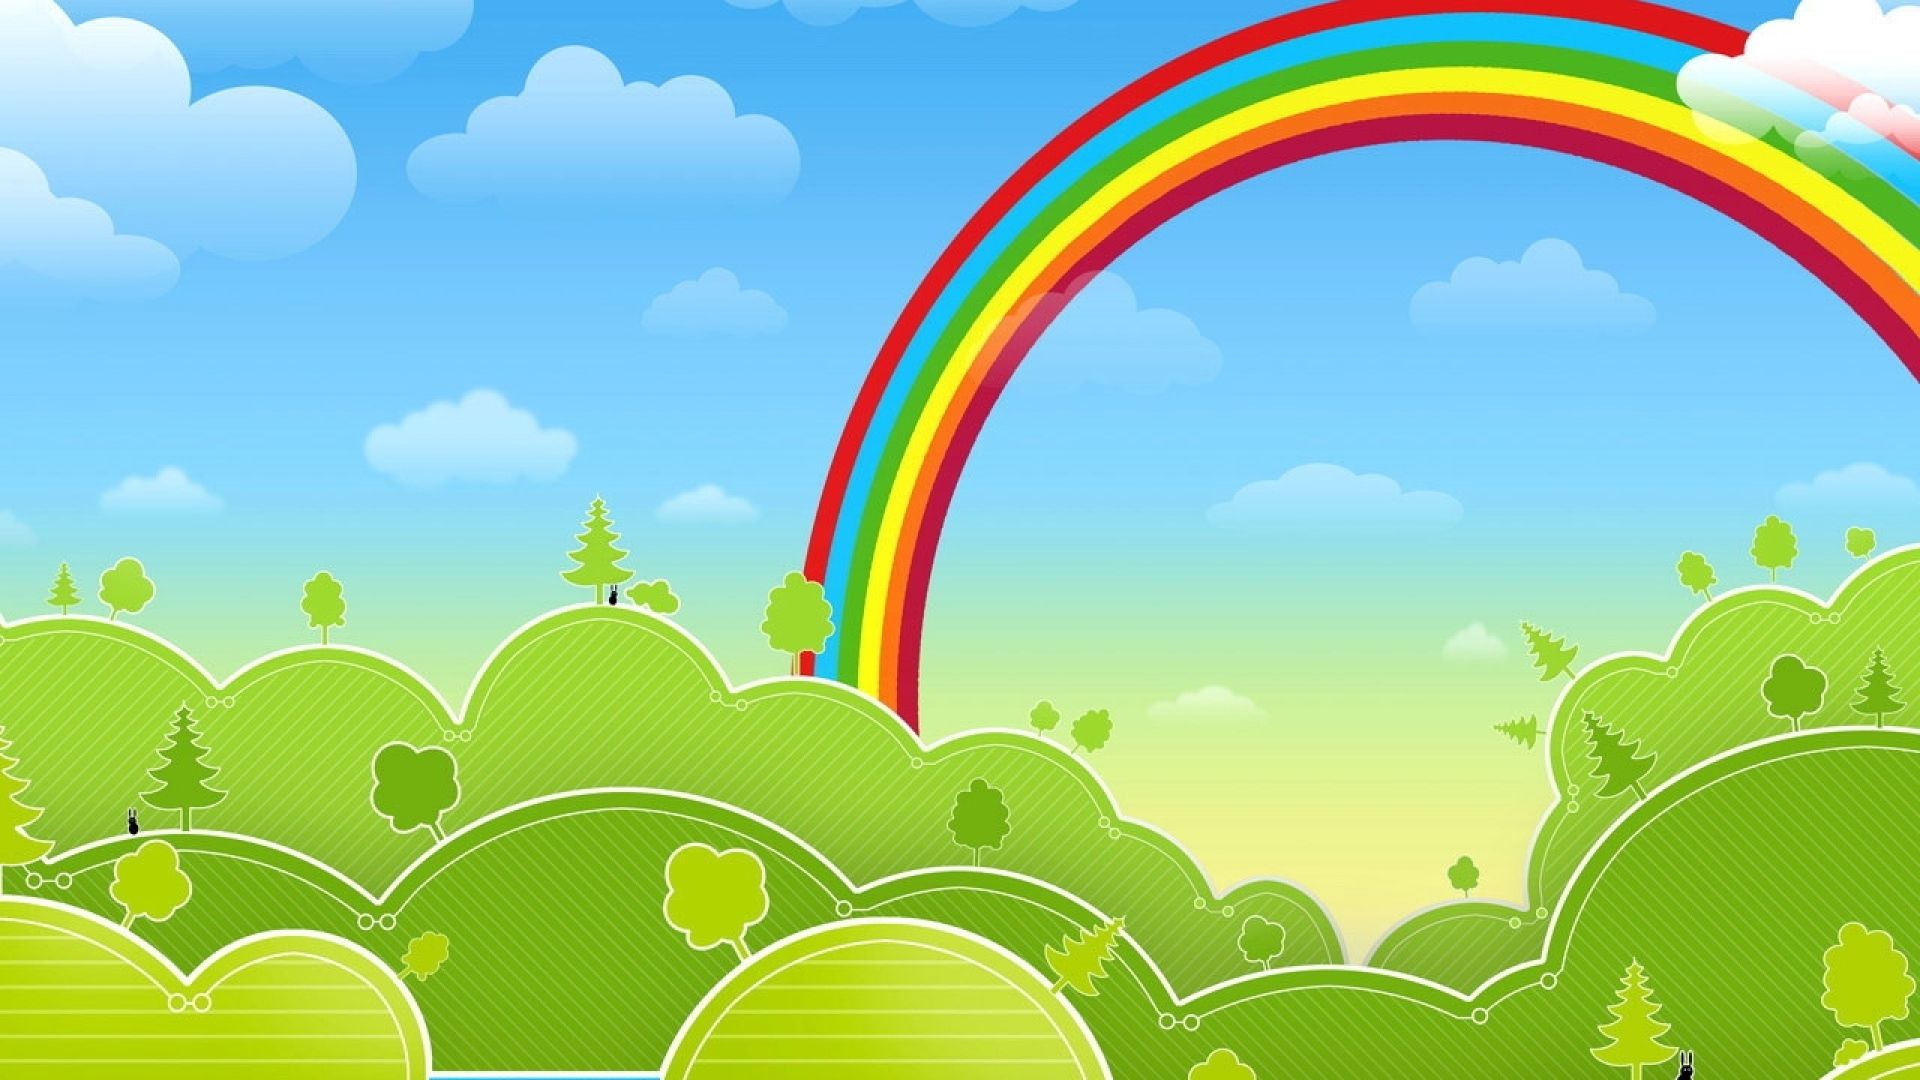 Rainbow Drawing Pictures at GetDrawings.com | Free for personal use ...